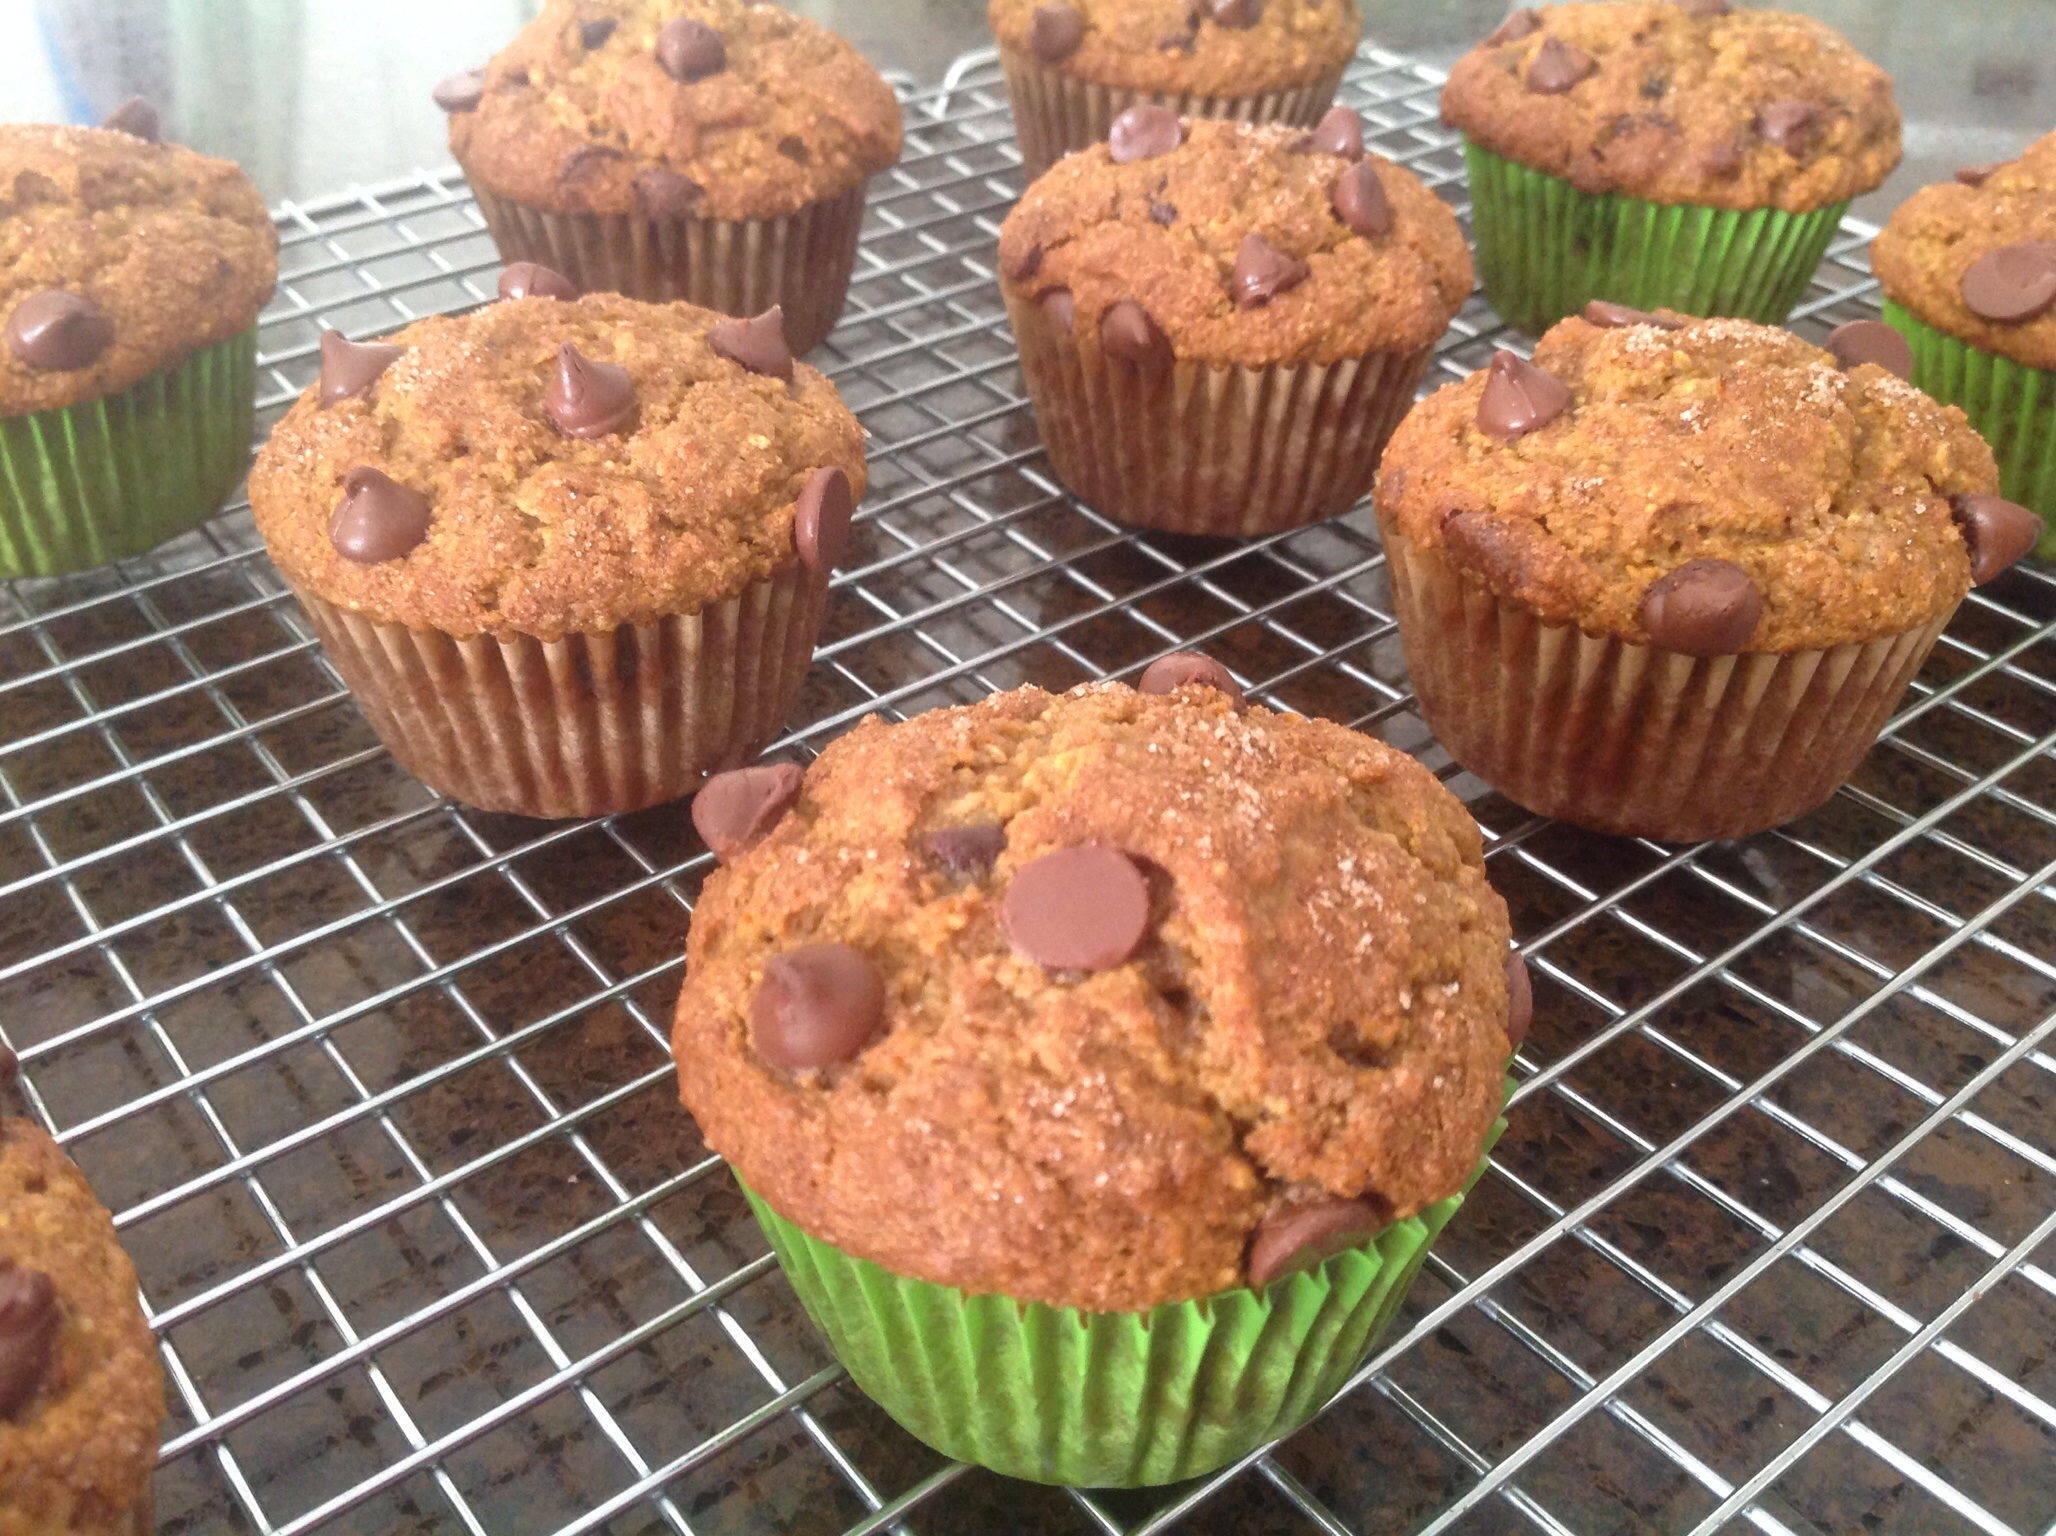 Healthy-ish Pumpkin Chocolate Chip Muffins